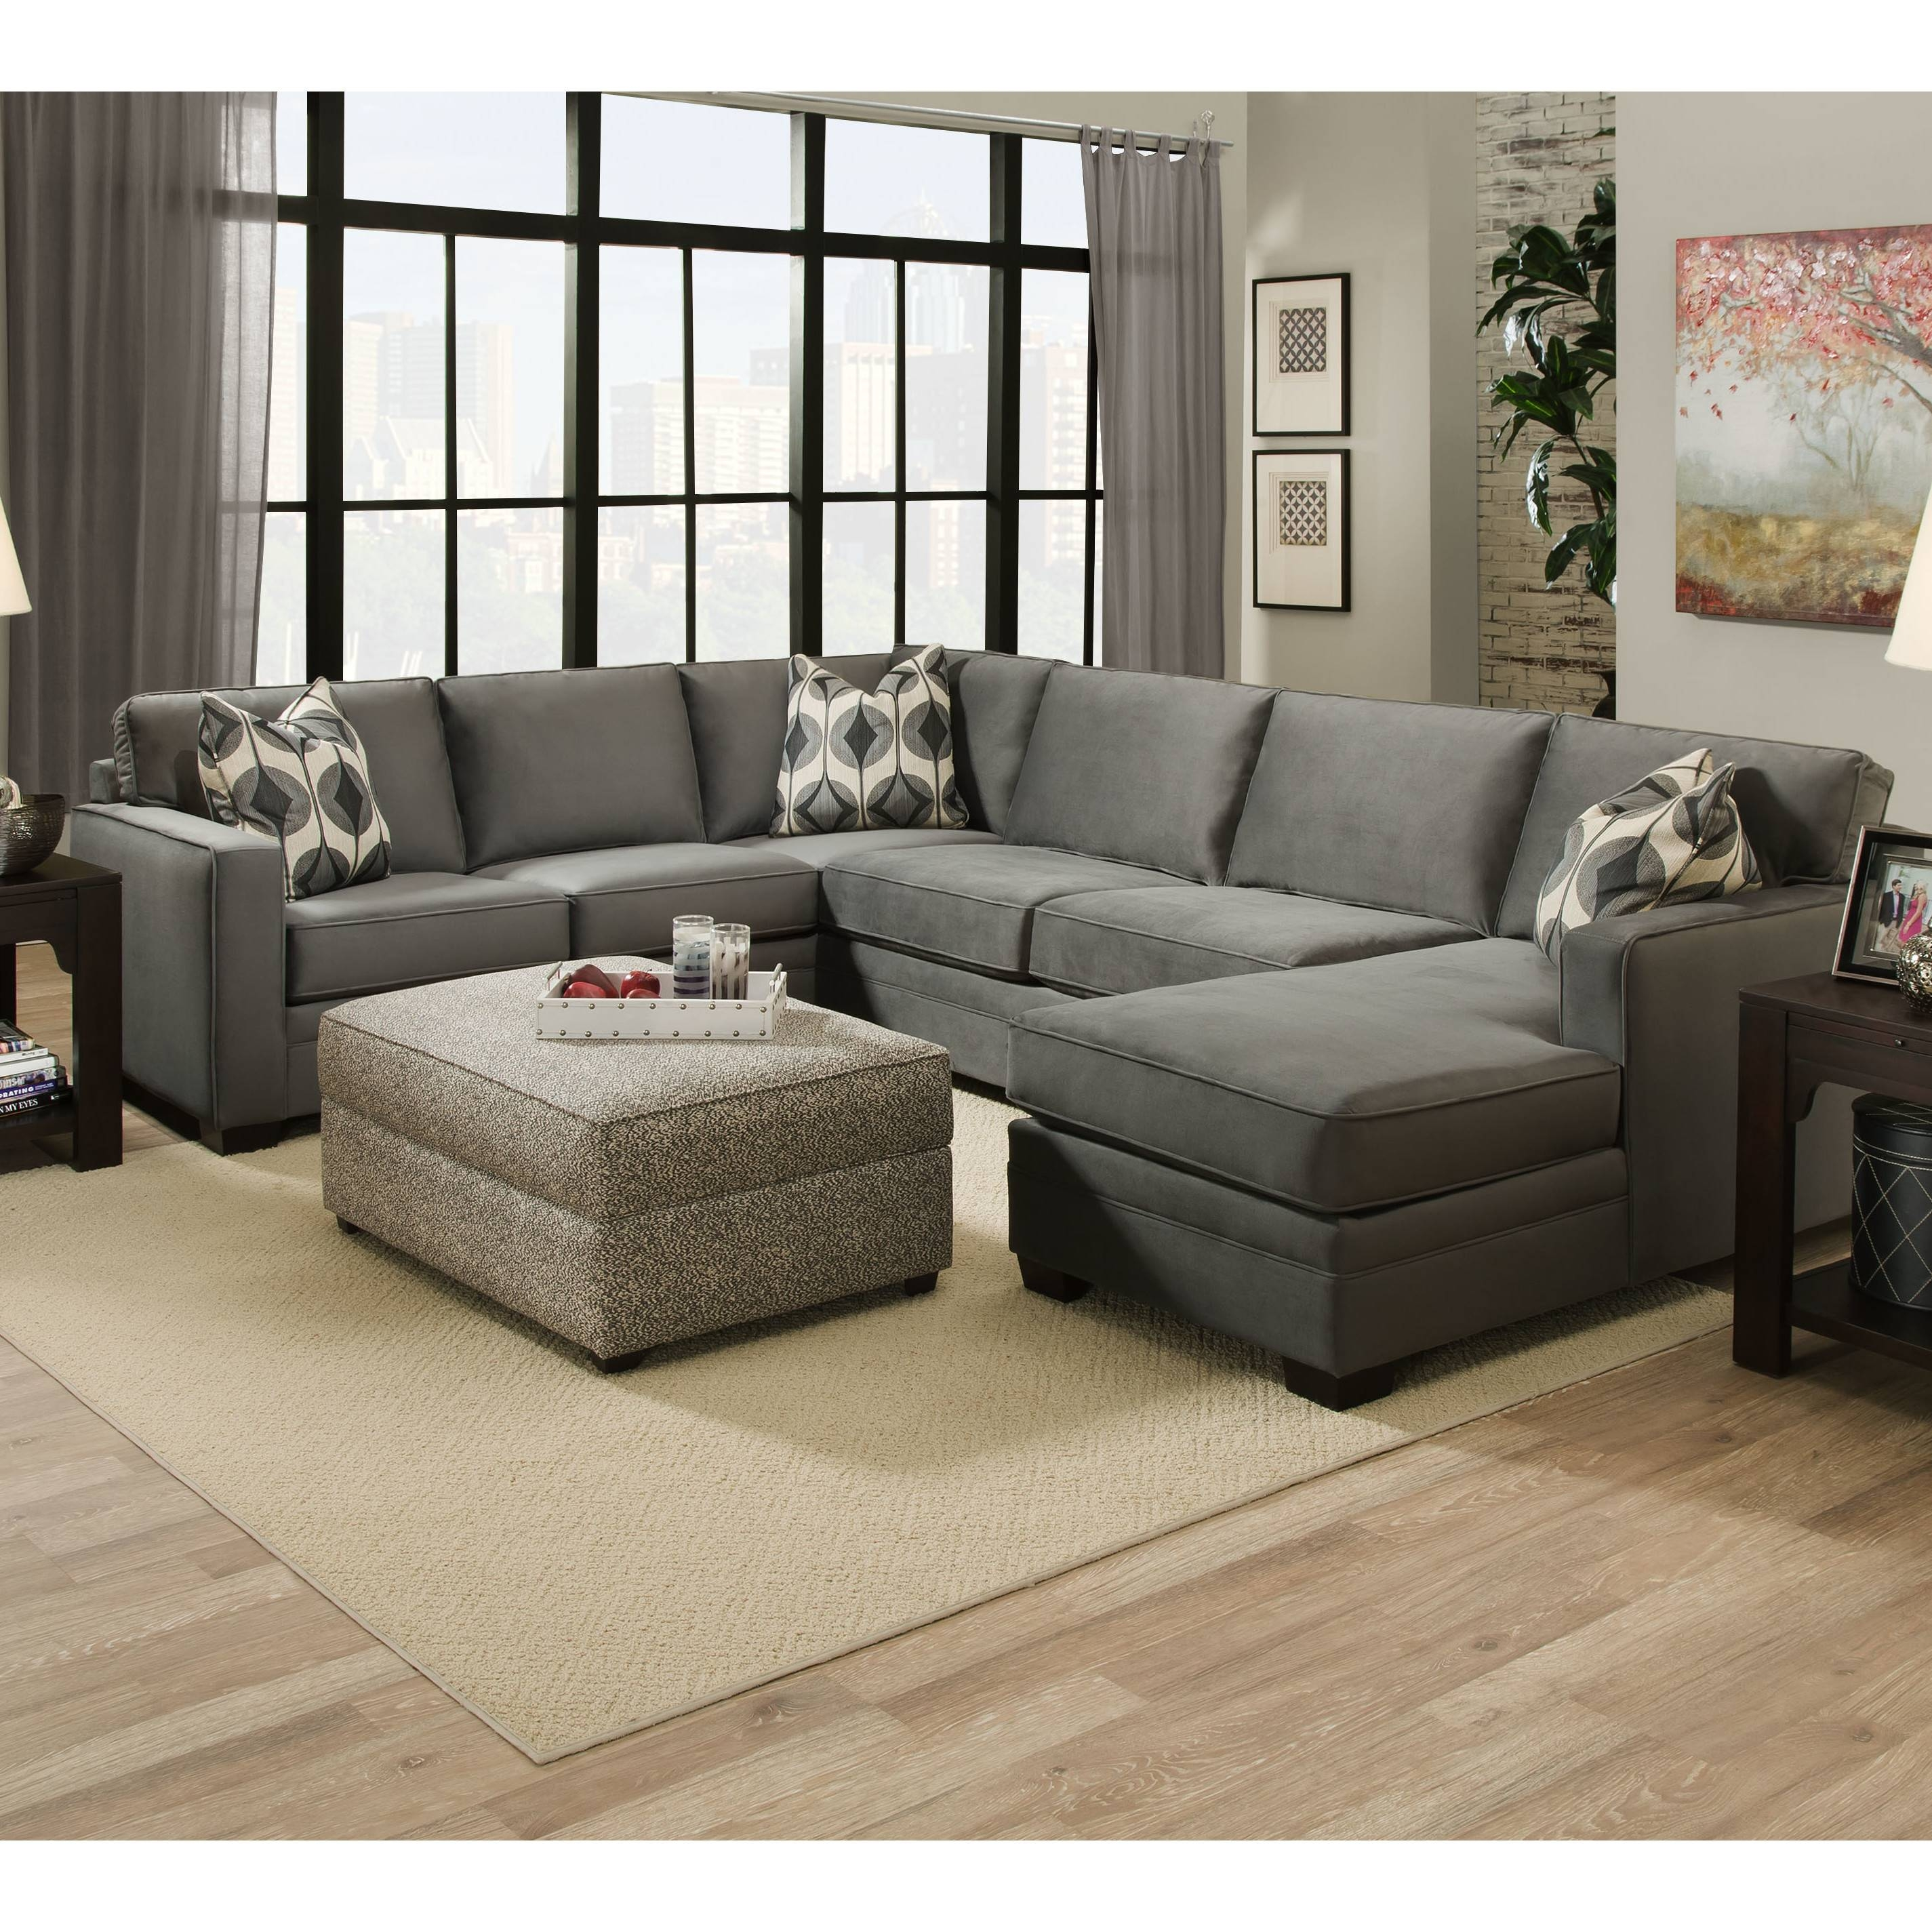 american made sectional sofas 1025thepartycom